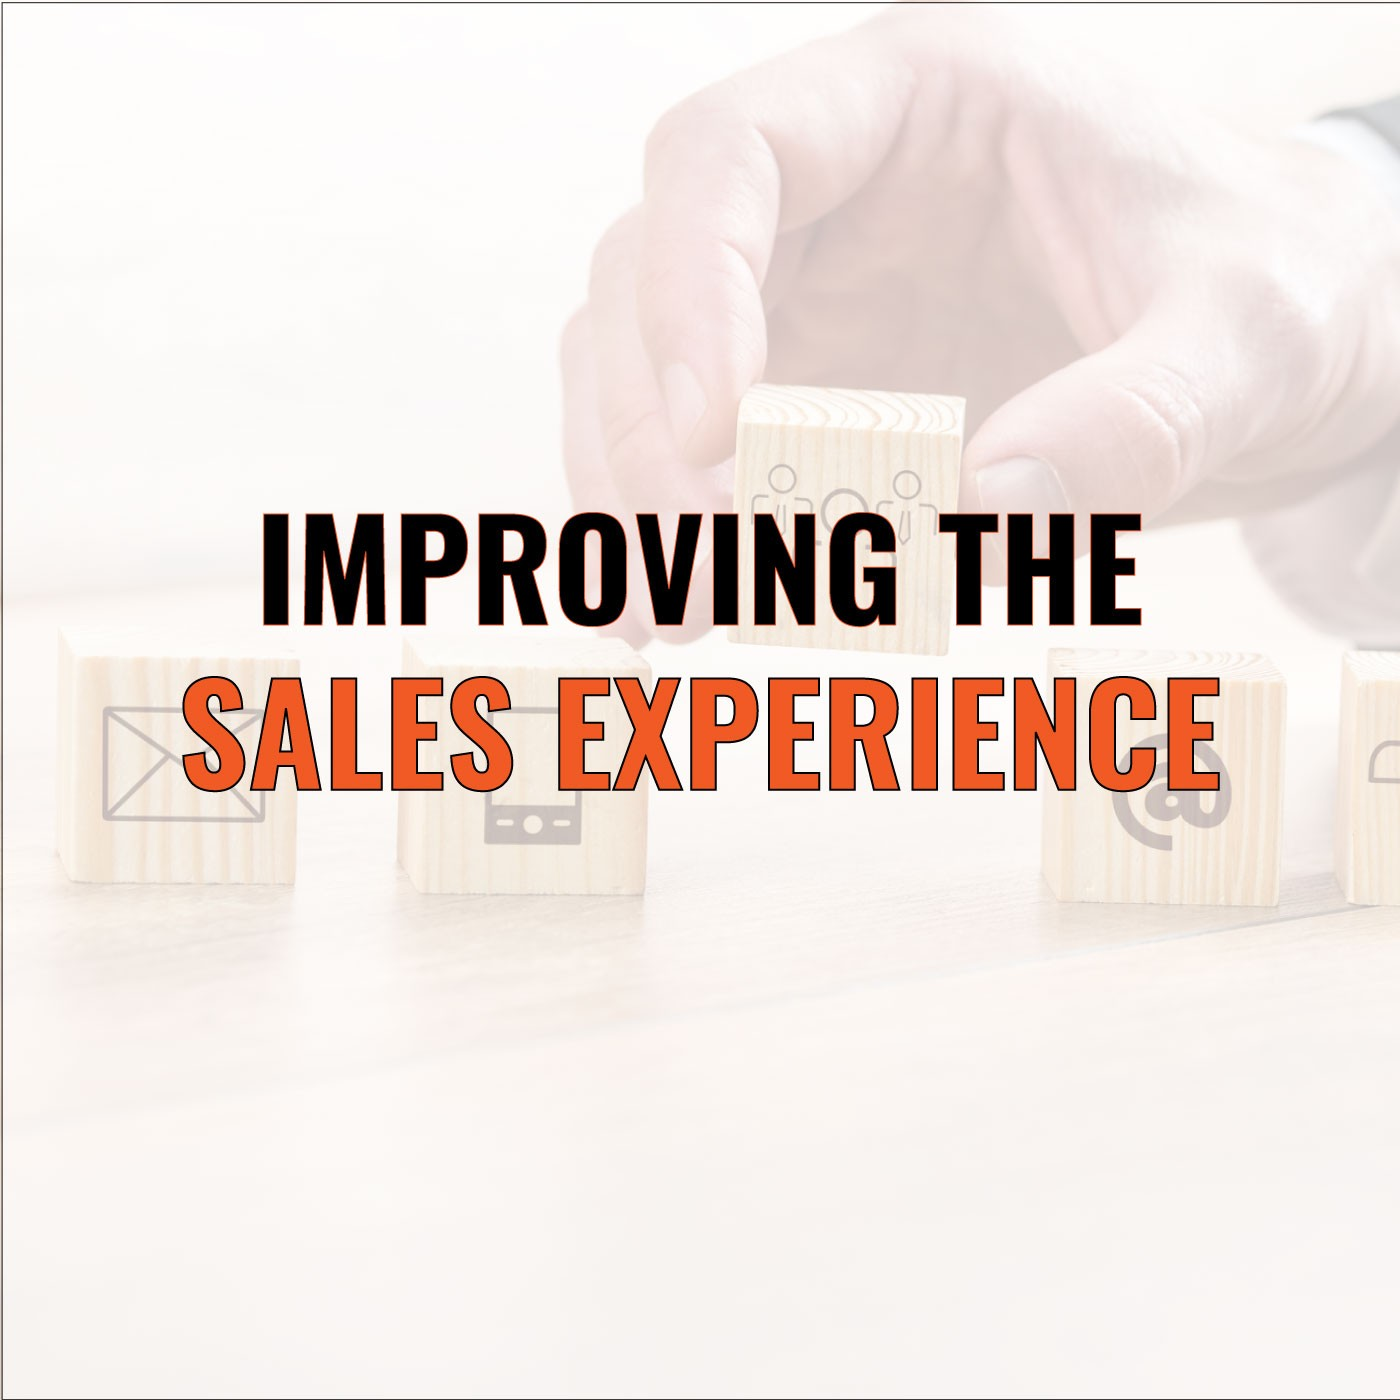 Barb Giamanco on Improving the Sales Experience